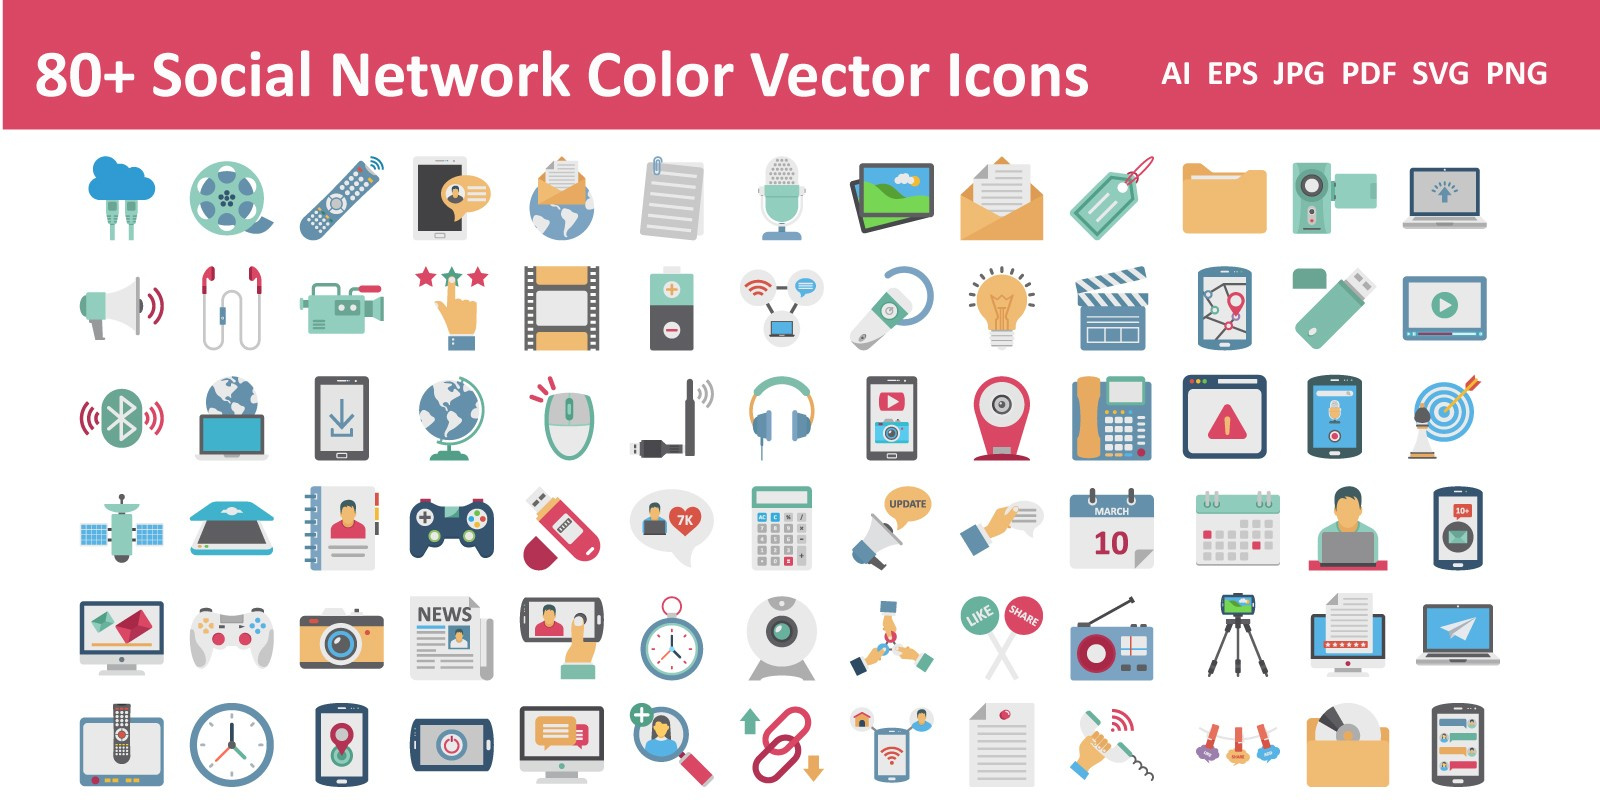 Social Network Color Vector Icon